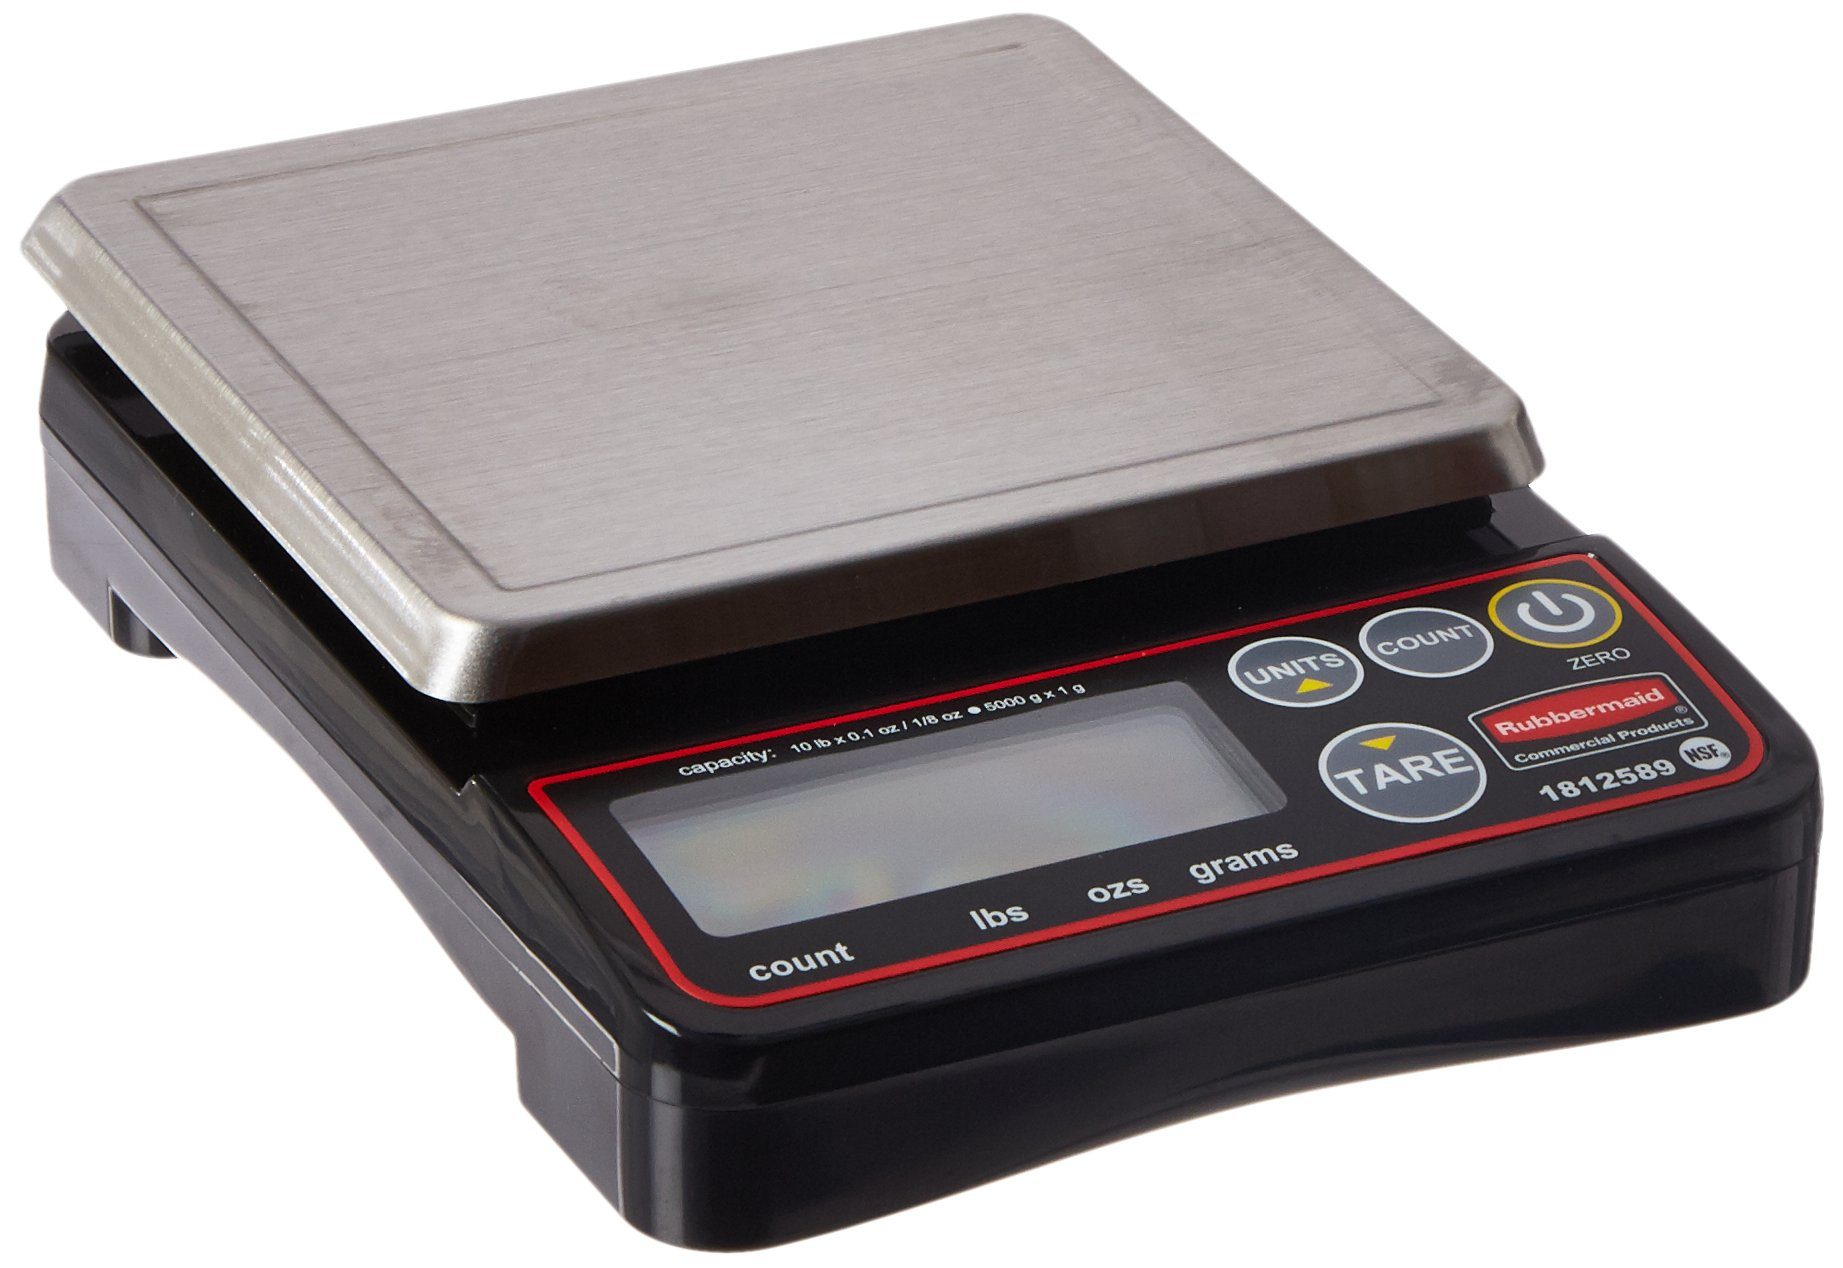 Rubbermaid Commercial Products 1812589 Compact Digital Scale for Foodservice Portion Control, 10 lb by Rubbermaid Commercial Products